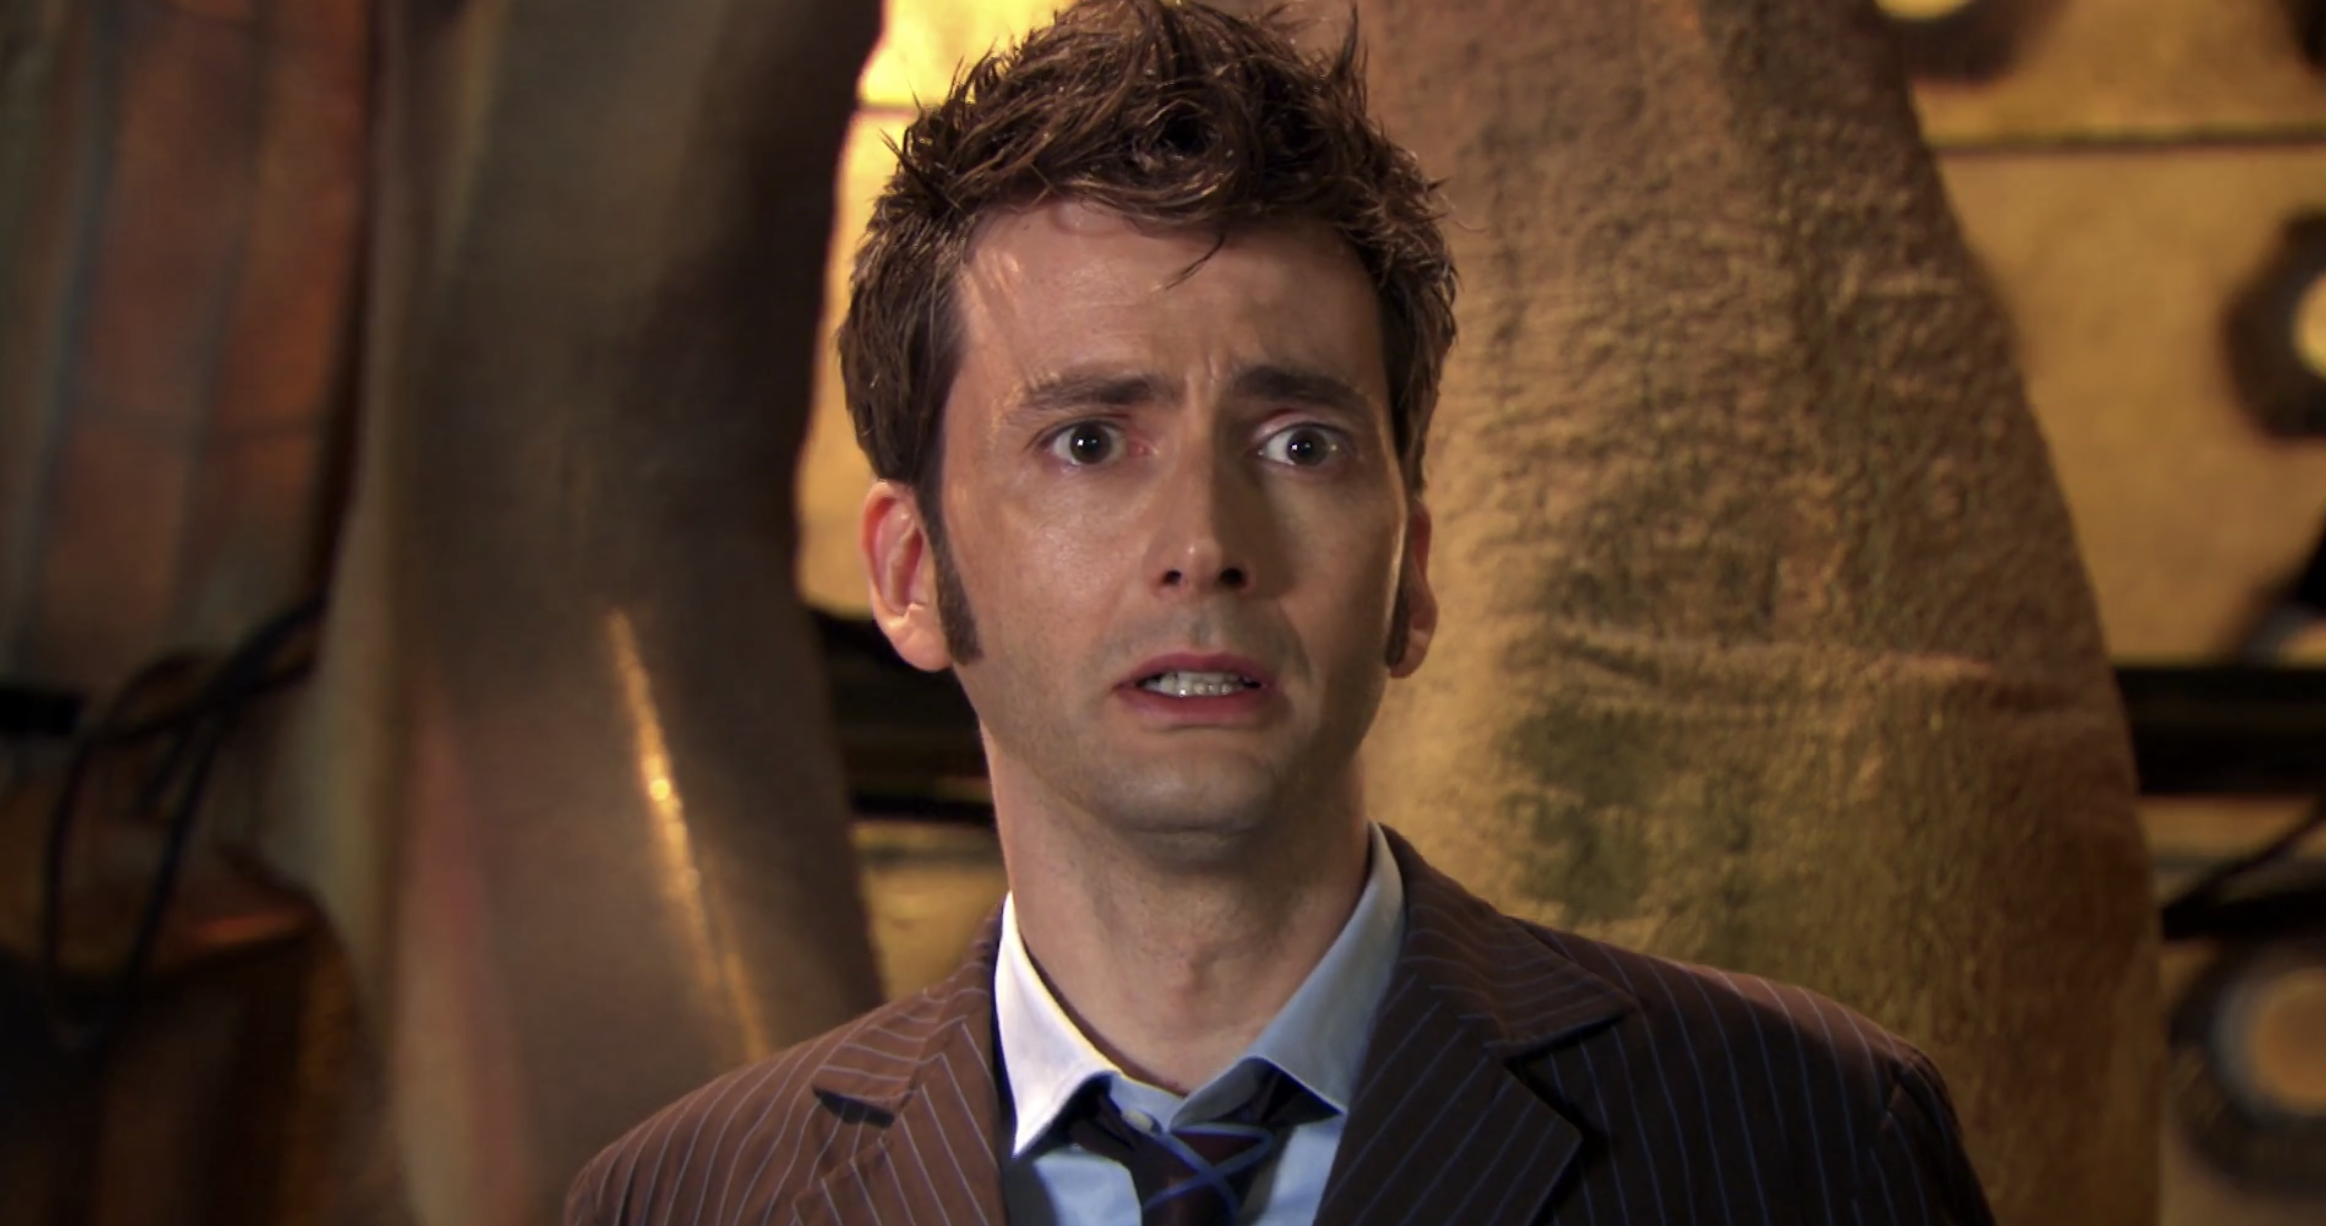 David Tennant as the Doctor in his final episode